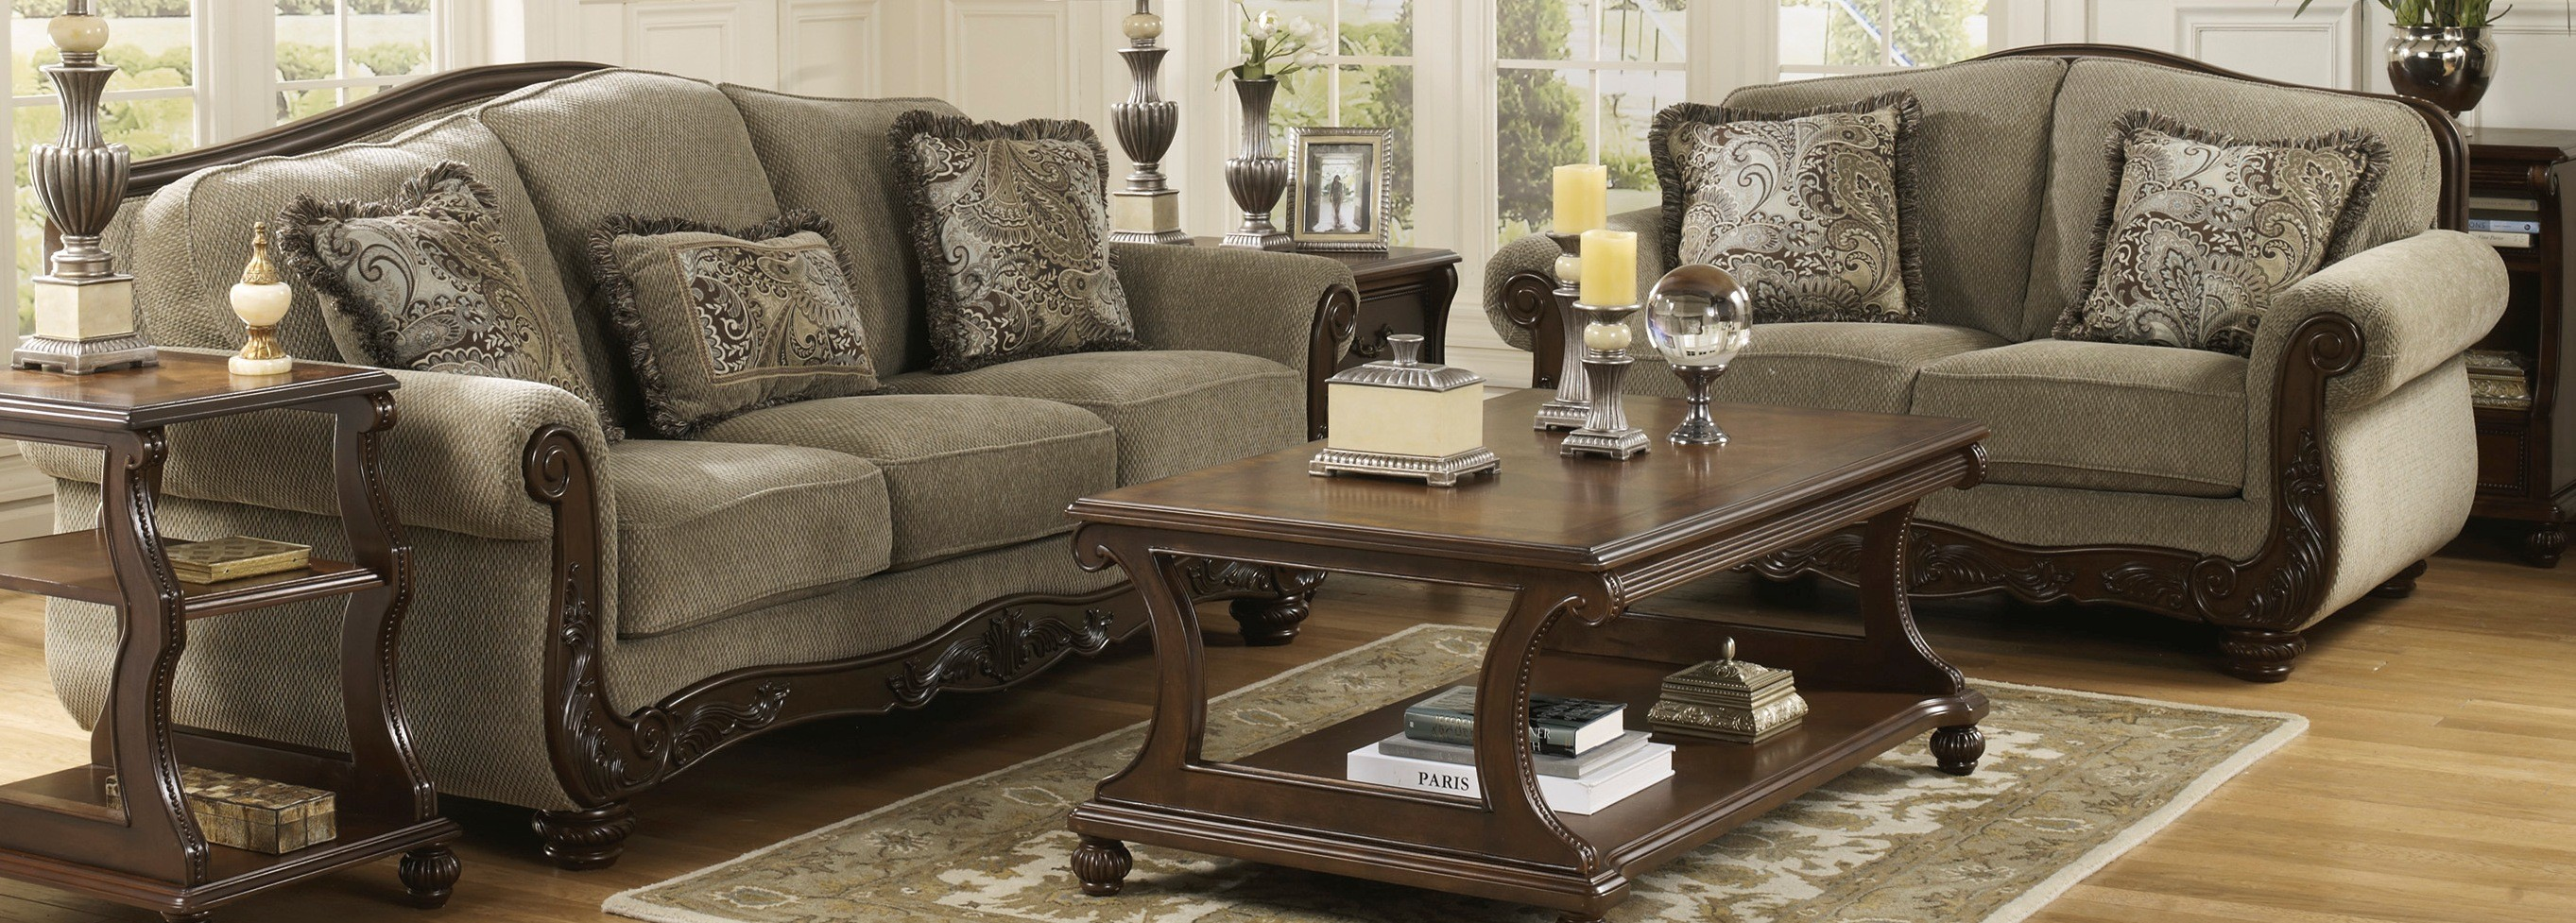 Ashleys Furniture Store | Ashley Furniture Louisville | Ashley Furniture Tyler Tx